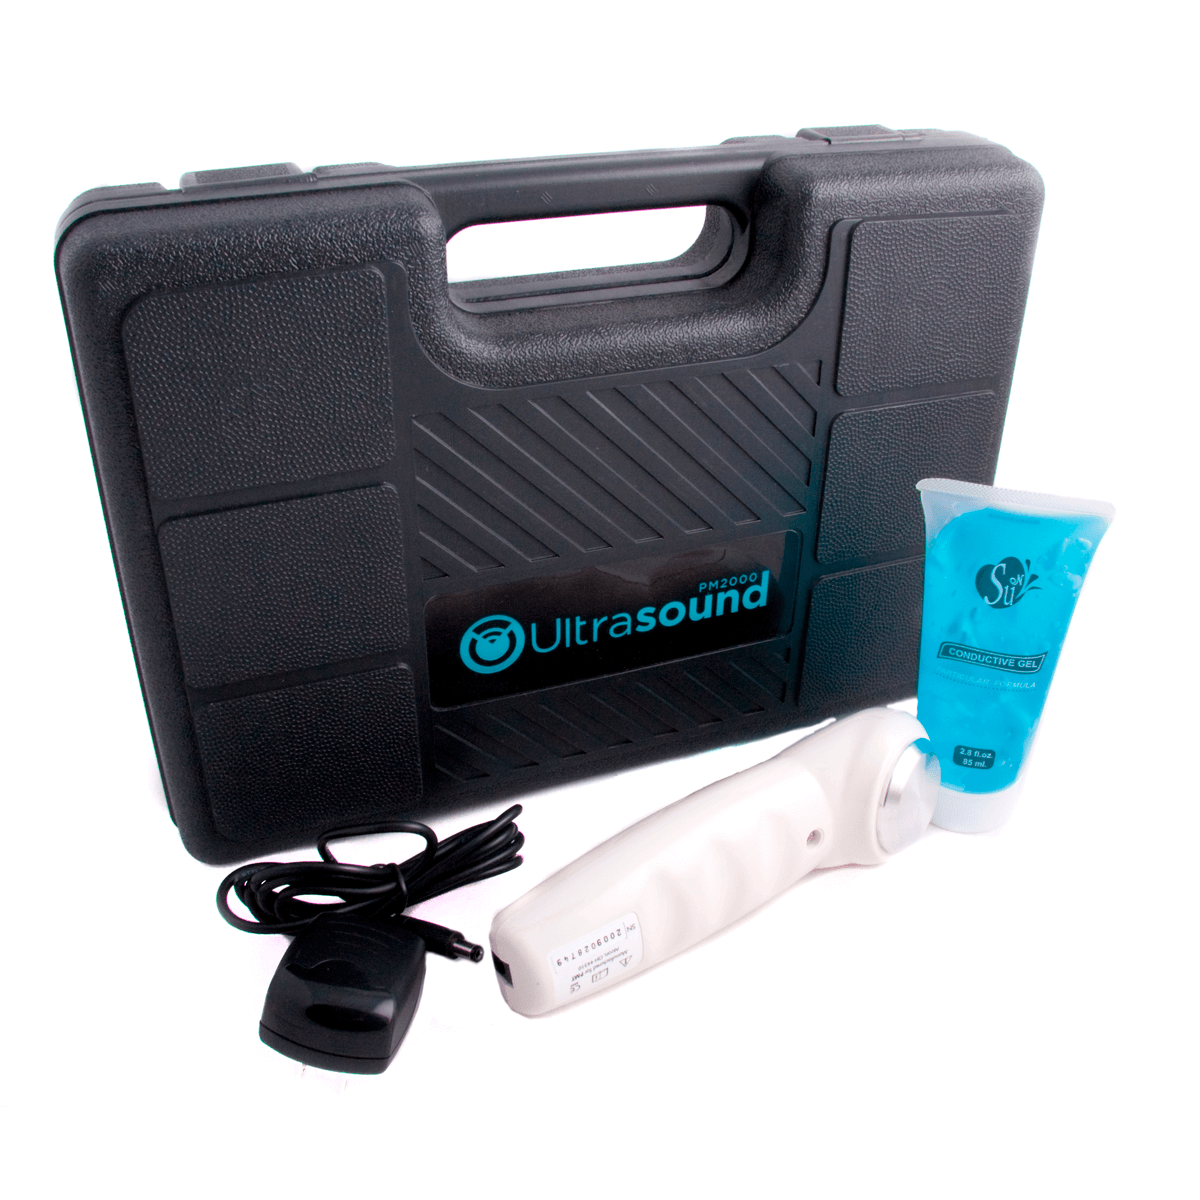 PMT Premium Portable Ultrasound Machine